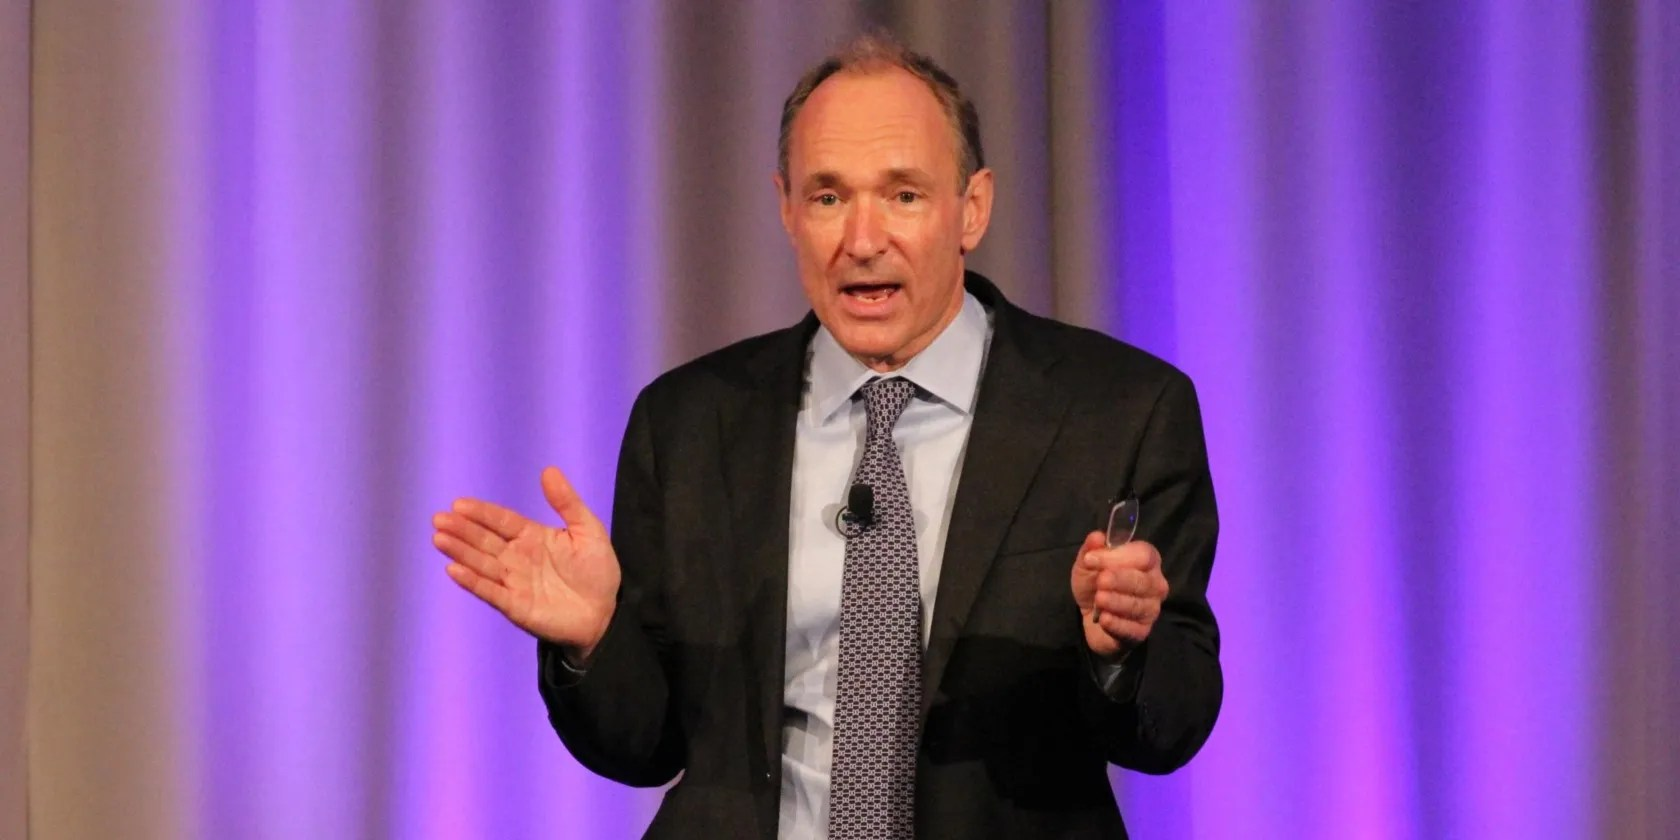 Tim Berners Lee Wants You To Help Save The Web